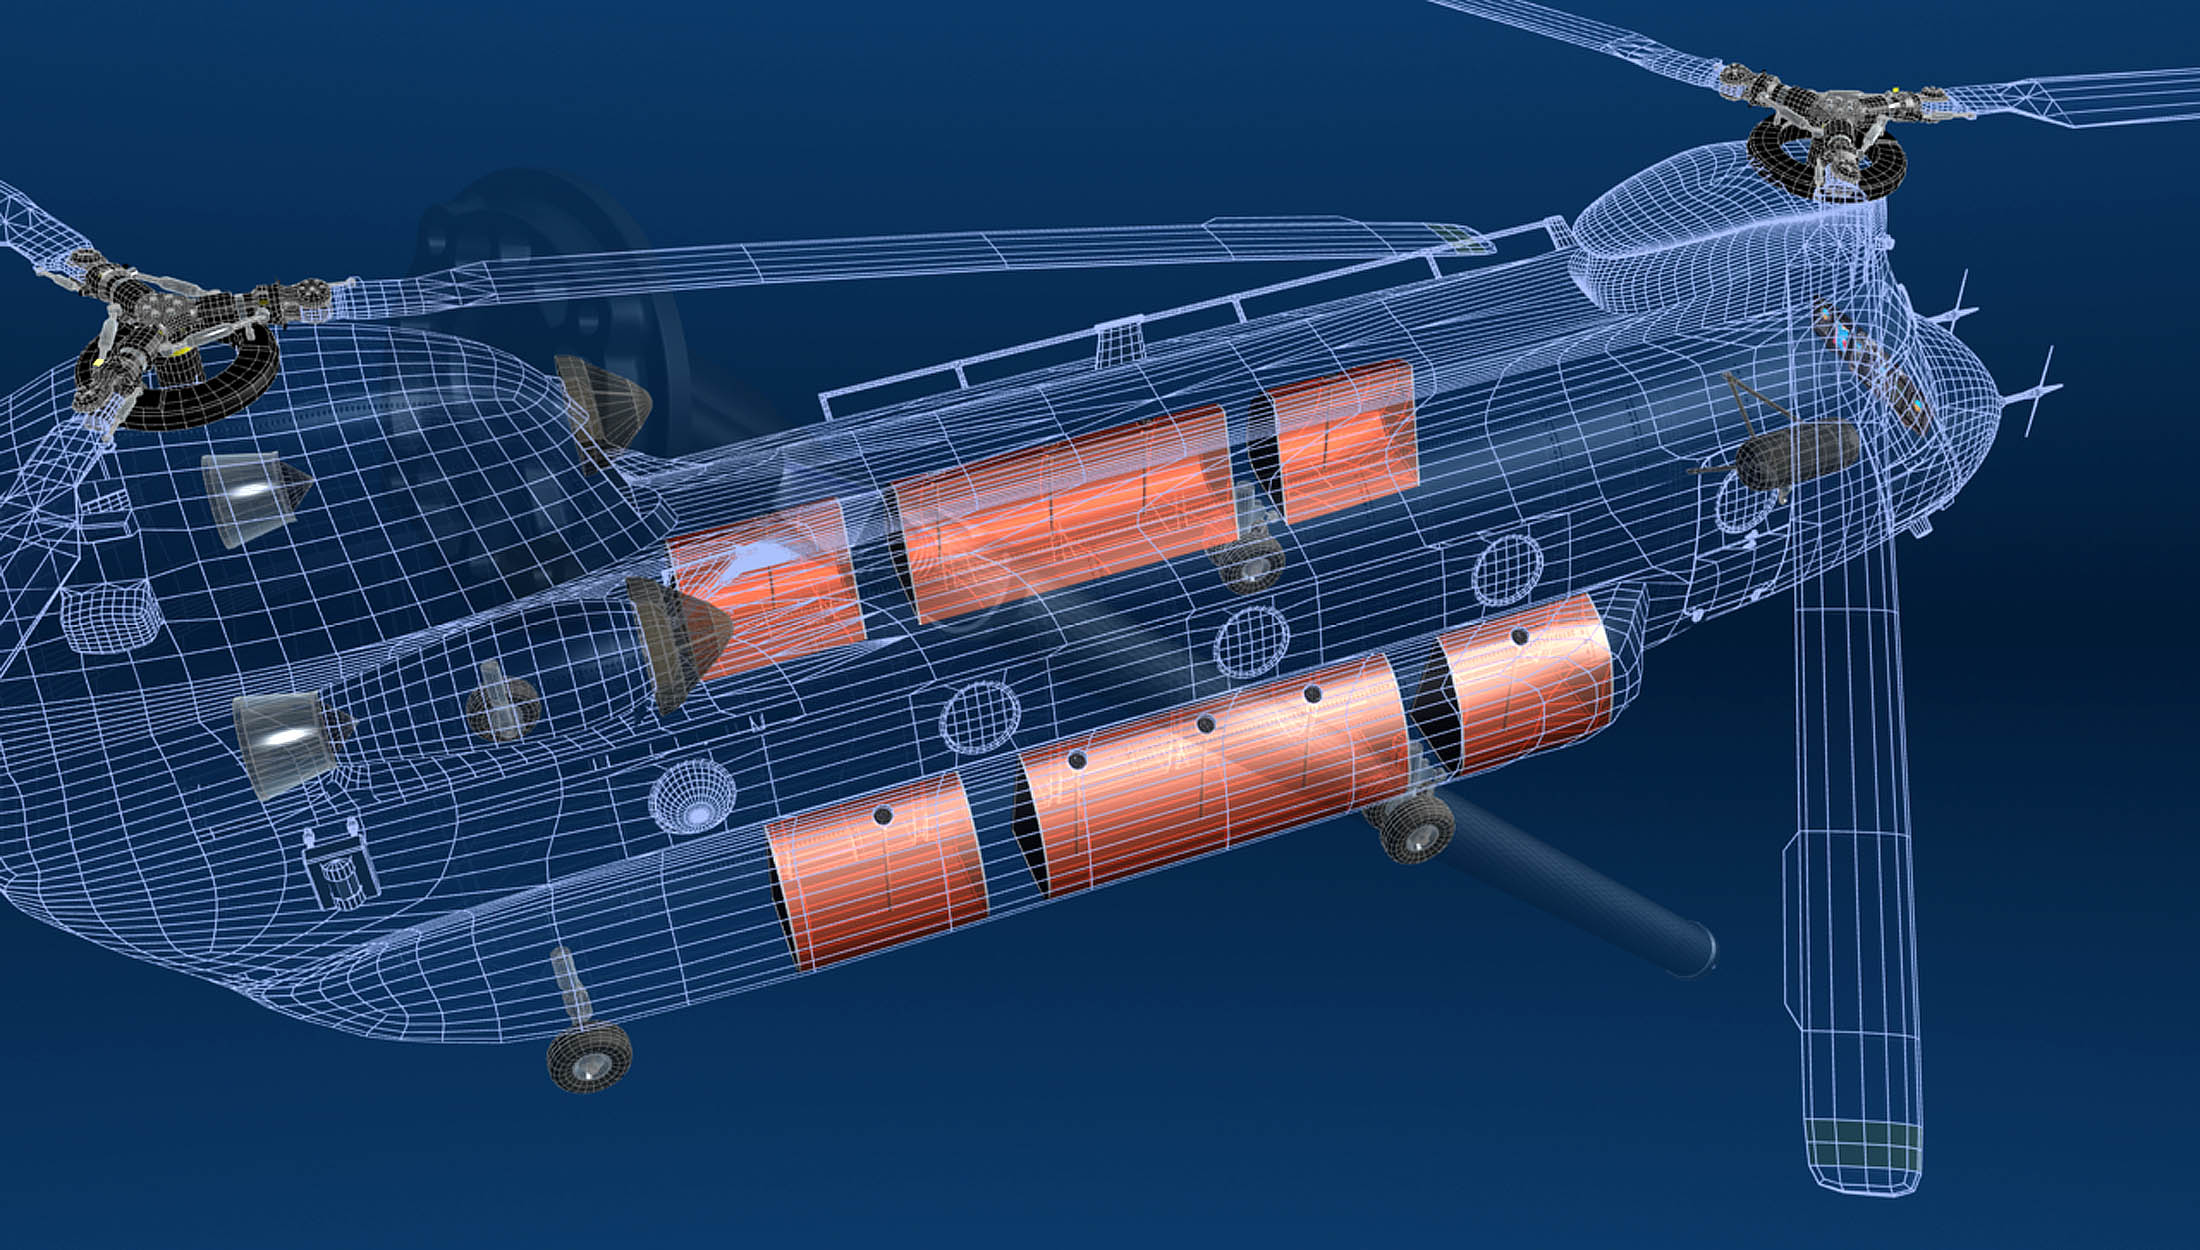 Wireframe image of a dual-rotor CH-47 revealing fuel tanks where fuel probes will be installed.